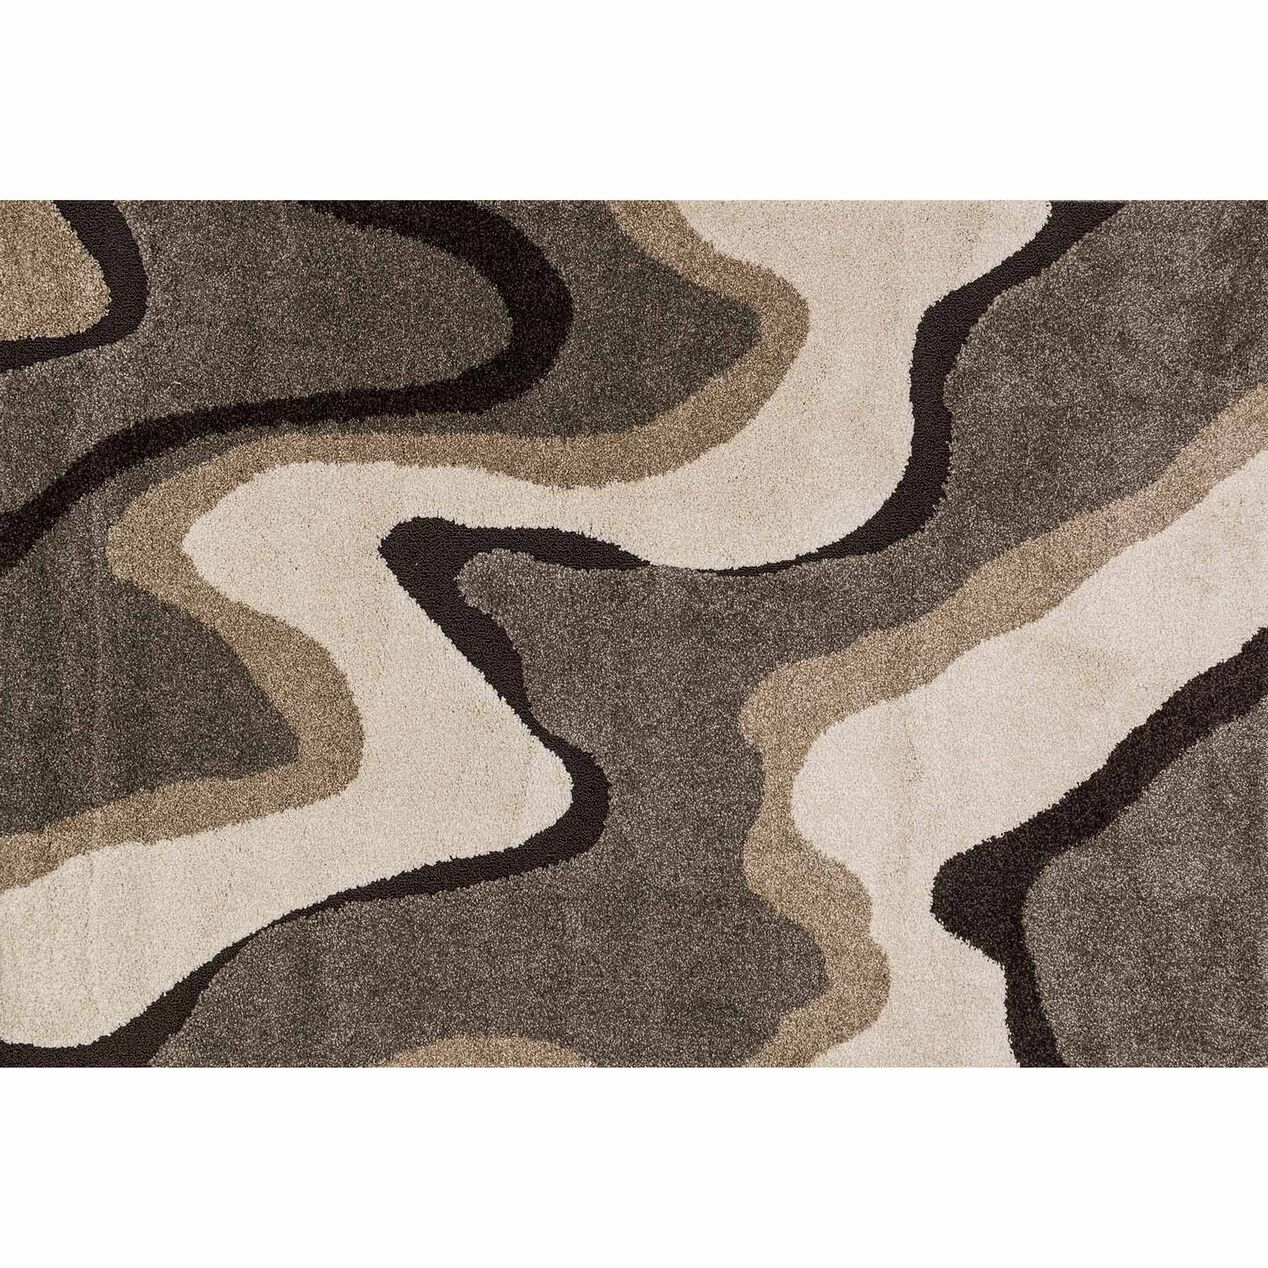 A280 Sydney Waves Multi Rug 8x10 Ft At Home